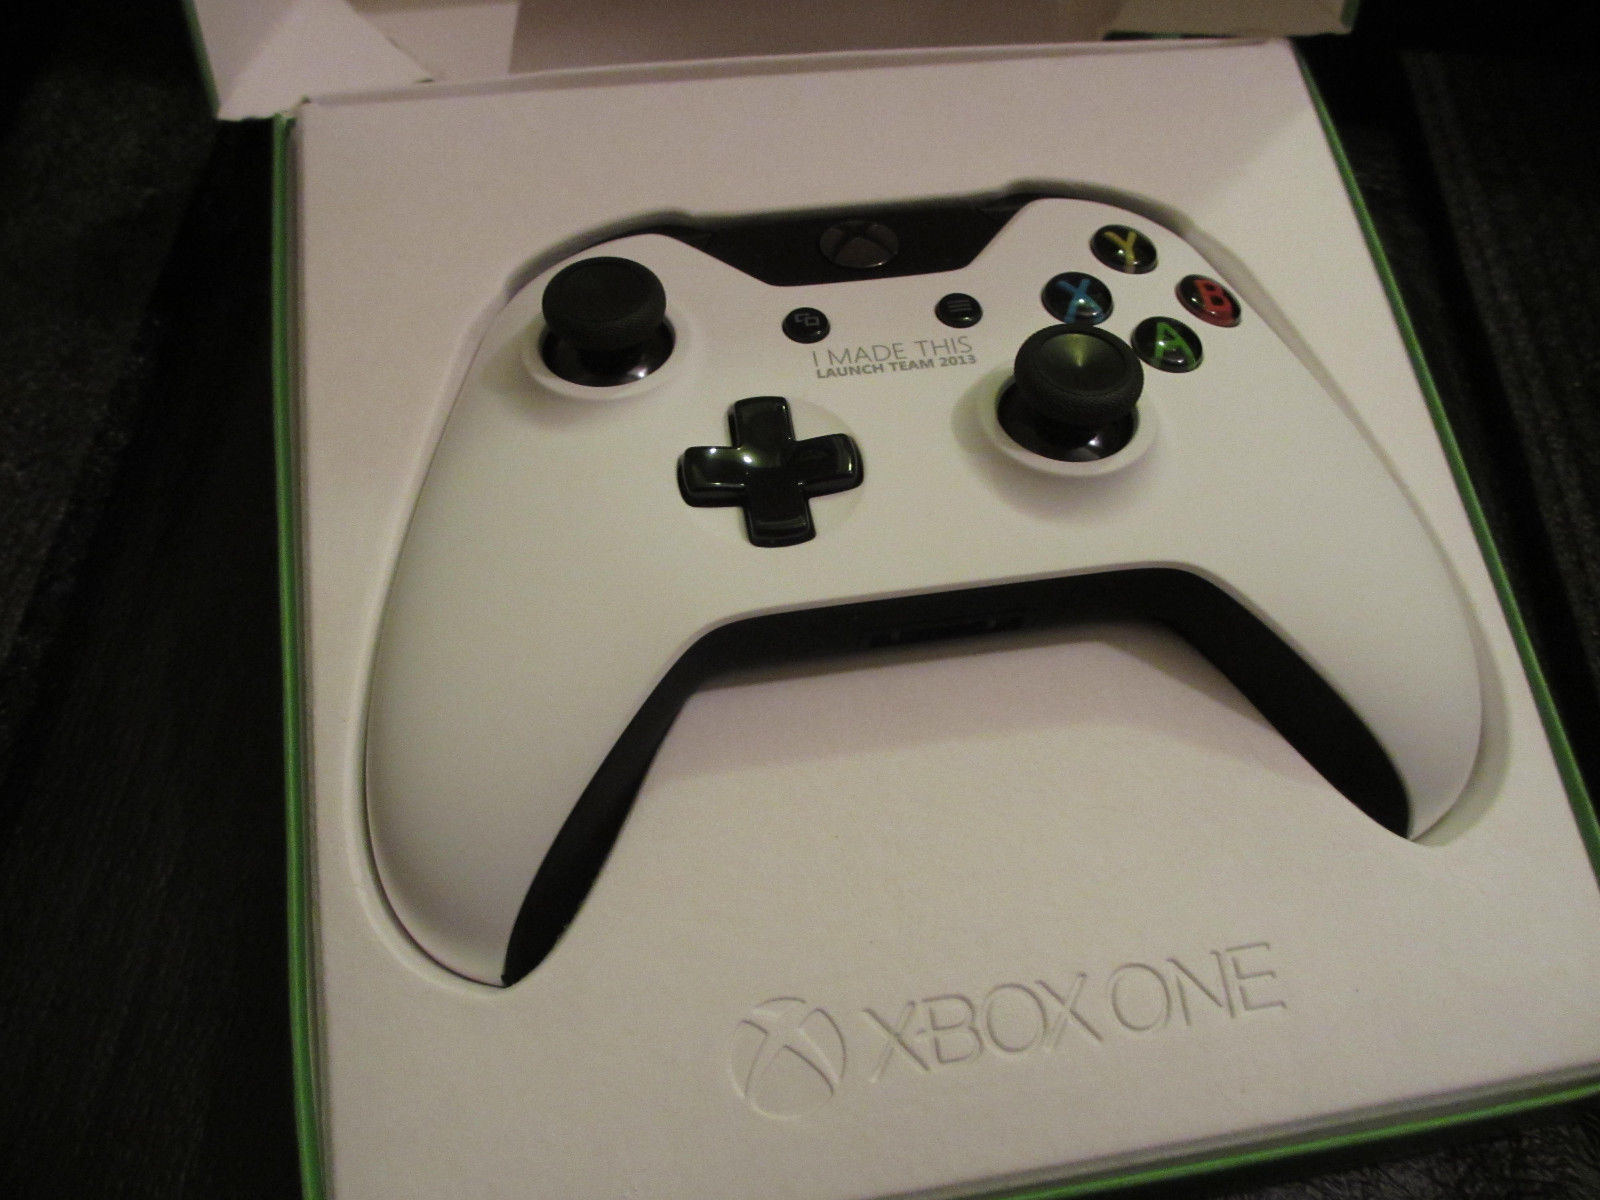 Xbox One White Console Appears On EBay At 2700 VG247